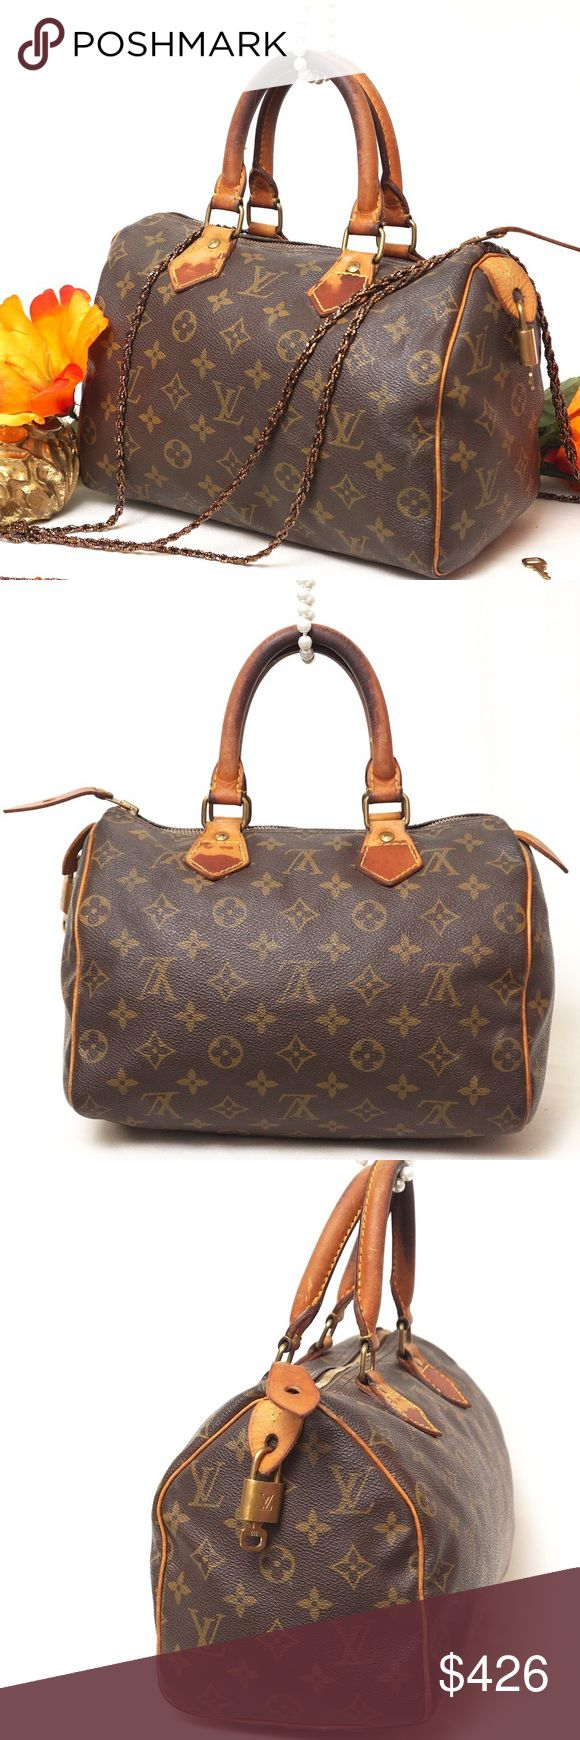 """AUTH LOUIS VUITTON SPEEDY 25 VINTAGE SATCHEL BAG Adorable LV SPEEDY. Preloved in very good vintage condition. Leather shows some discoloration. Corners show slight wear. No rips stains. Key and lock included. This is one of the most beautiful thing your closet will have. Size 10,5""""x7,5""""x6"""". Pet smoke free home.  AUTHENTIC❣️PATENT LEATHER ❣️FAST SHIPPING!  ⏳My items sell fast. Get them before gone.⌛️Please see my other listings. Bundle & save.. I have over 200 different  listings with more to…"""